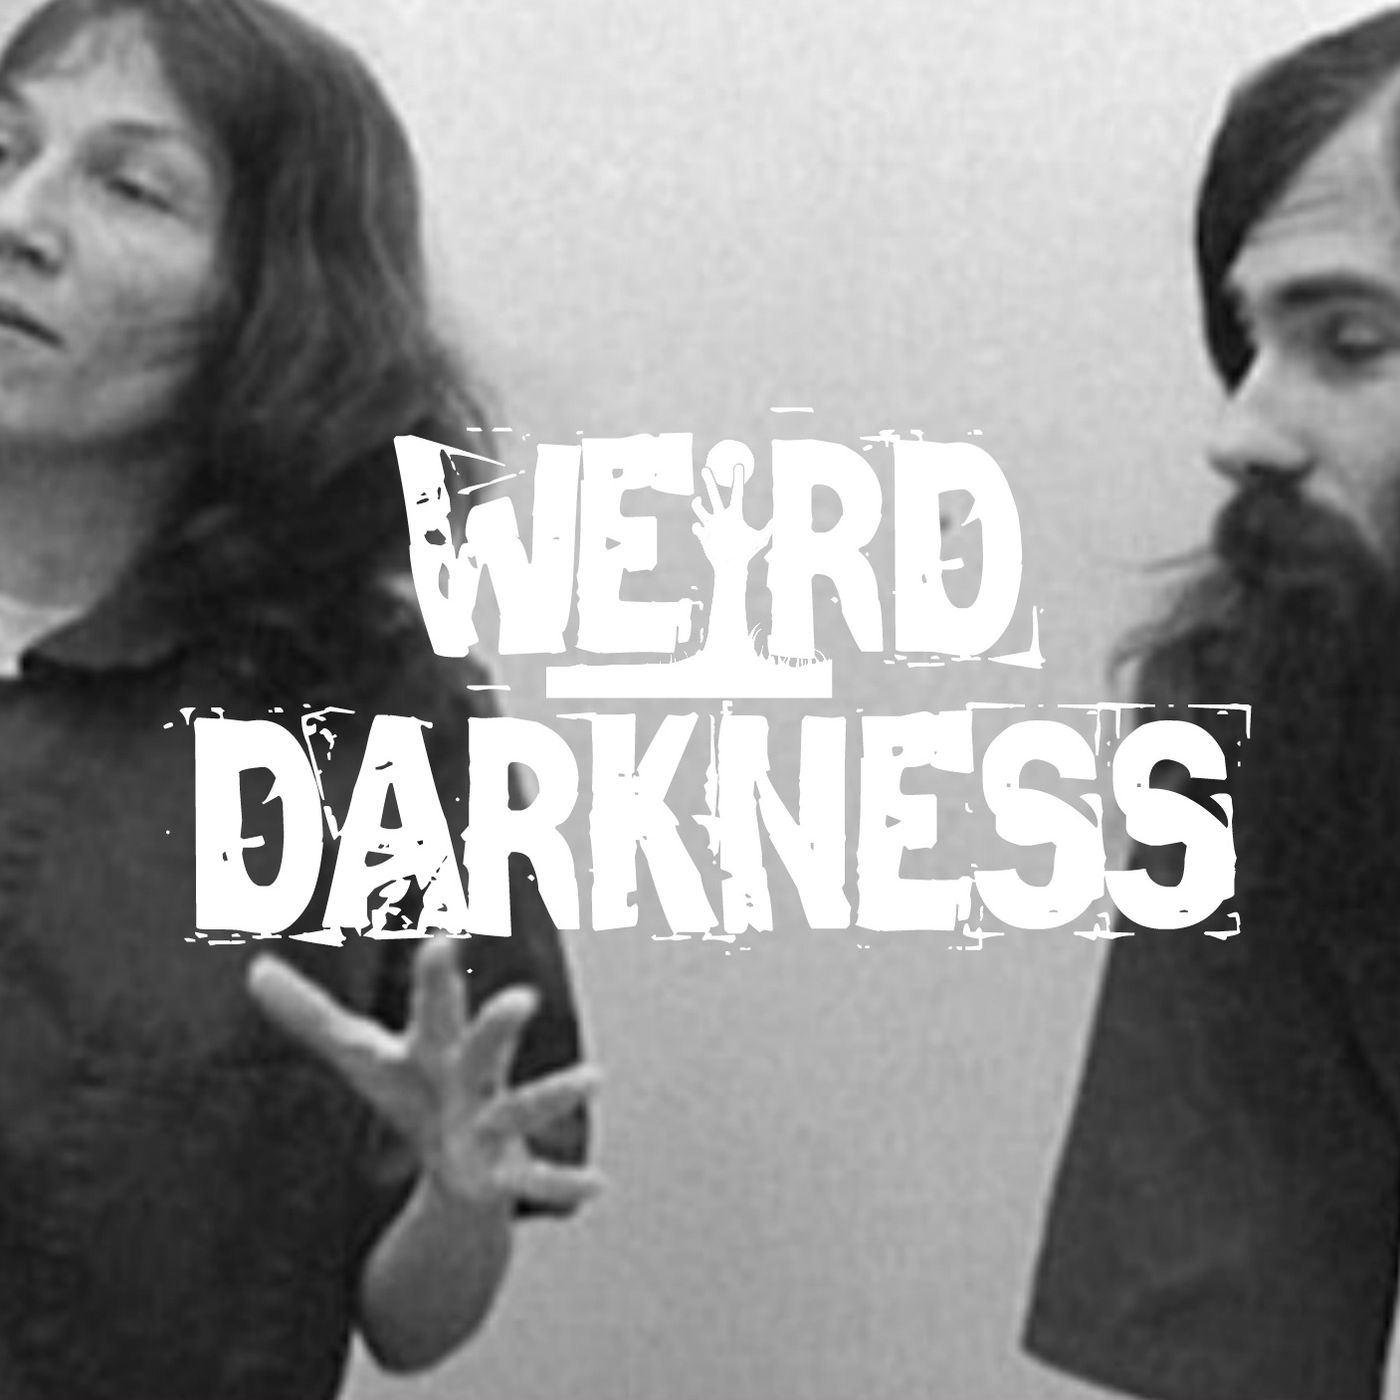 """""""THE NEW AGE MURDERERS WHO WENT ON A WITCH-KILLING SPREE"""" and 7 More True Horrors! #WeirdDarkness"""